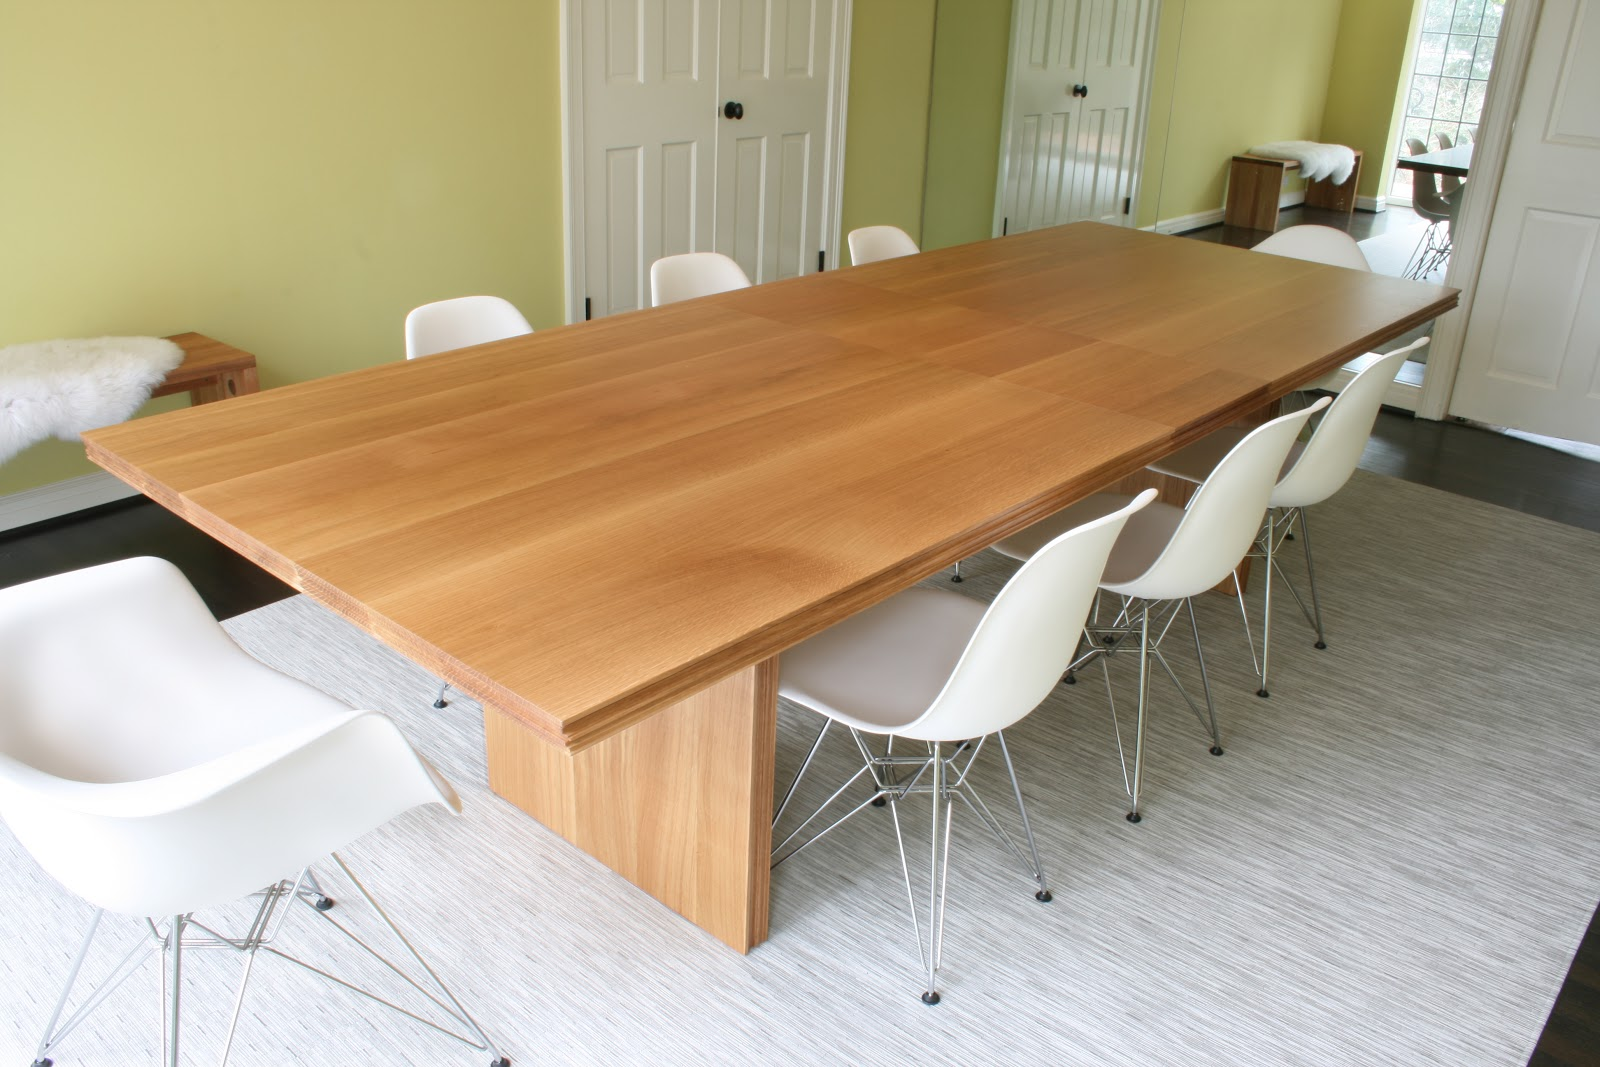 Favorite White Oak Dining Table | Made | Modern Designs for Modern Ideals FR73